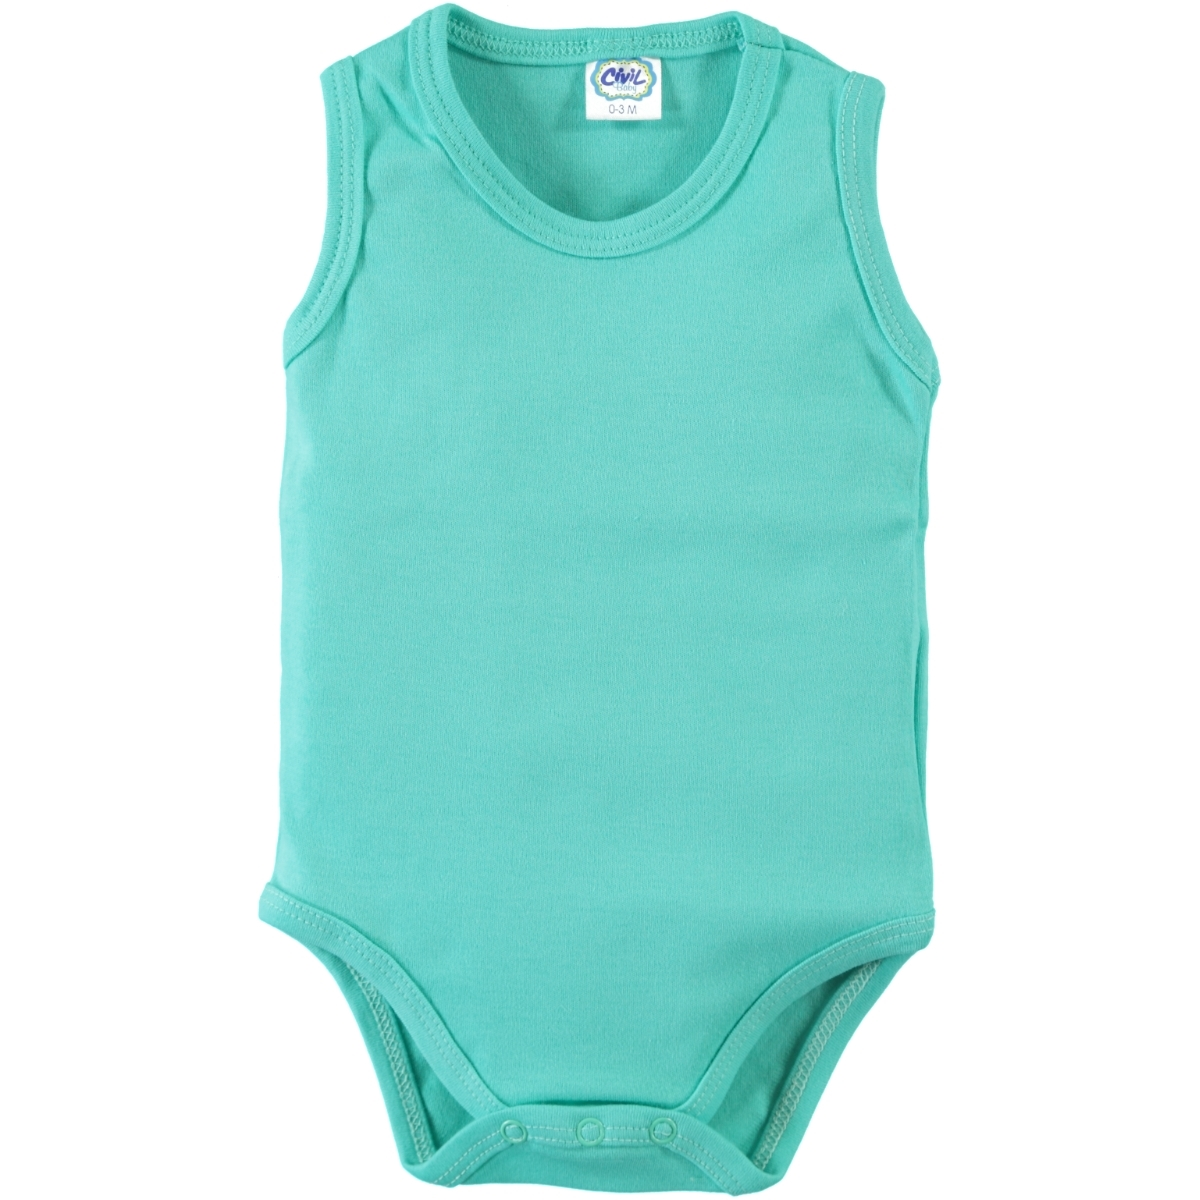 Civil Baby 3-24 Months Baby Mint Green Bodysuit With Snaps